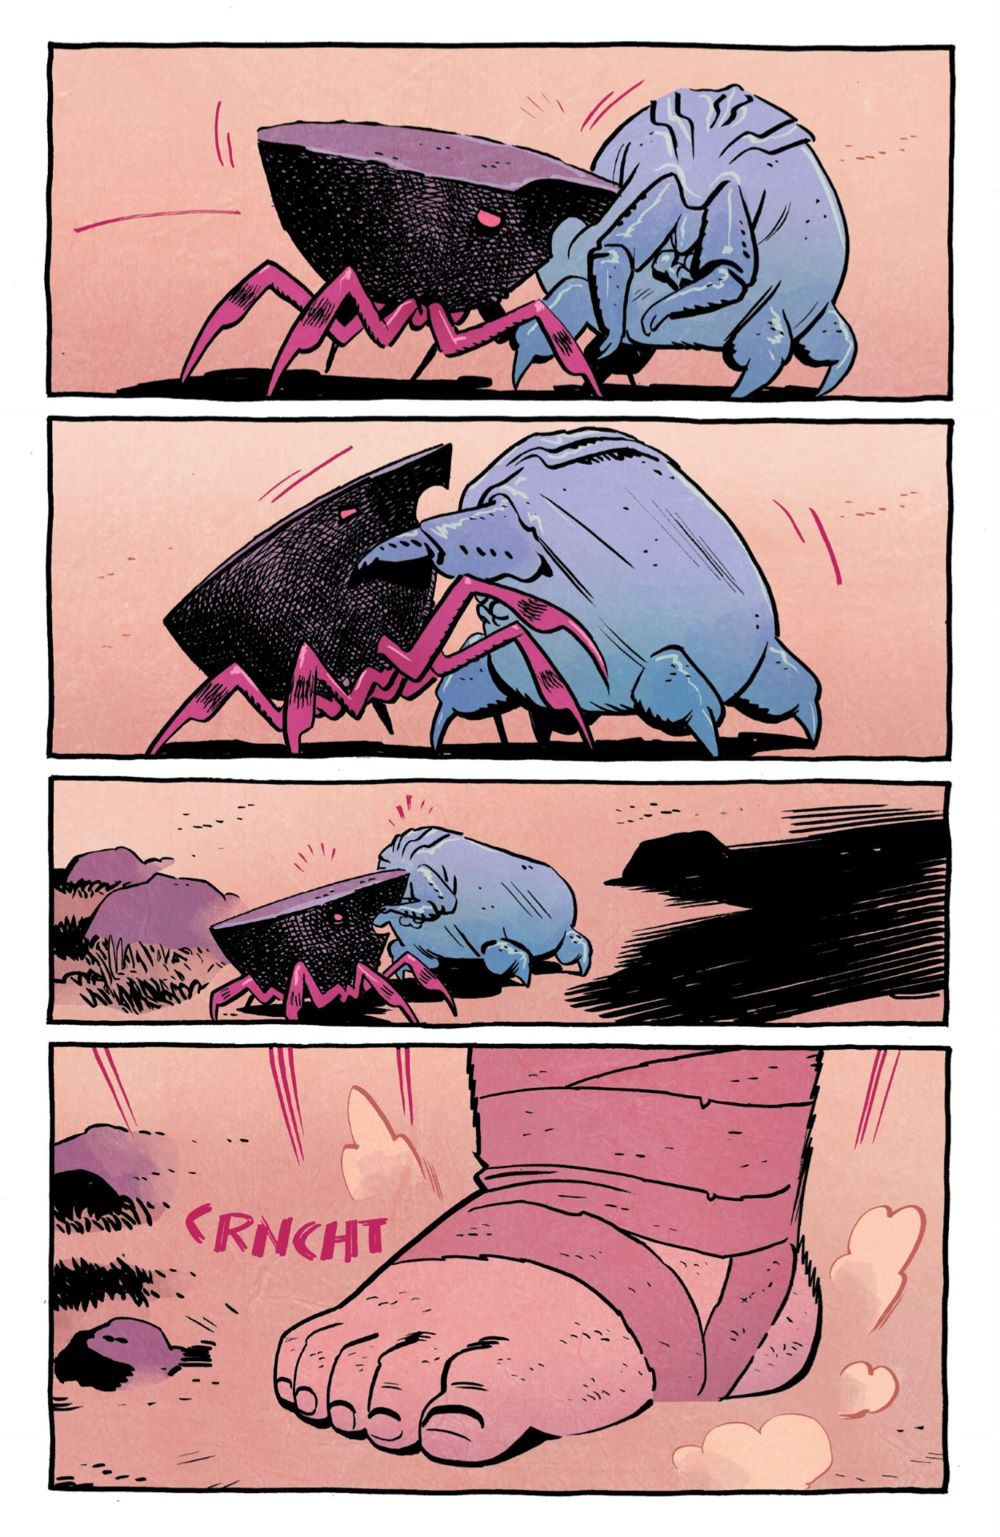 JONNA-3-REFERENCE-04 ComicList Previews: JONNA AND THE UNPOSSIBLE MONSTERS #3